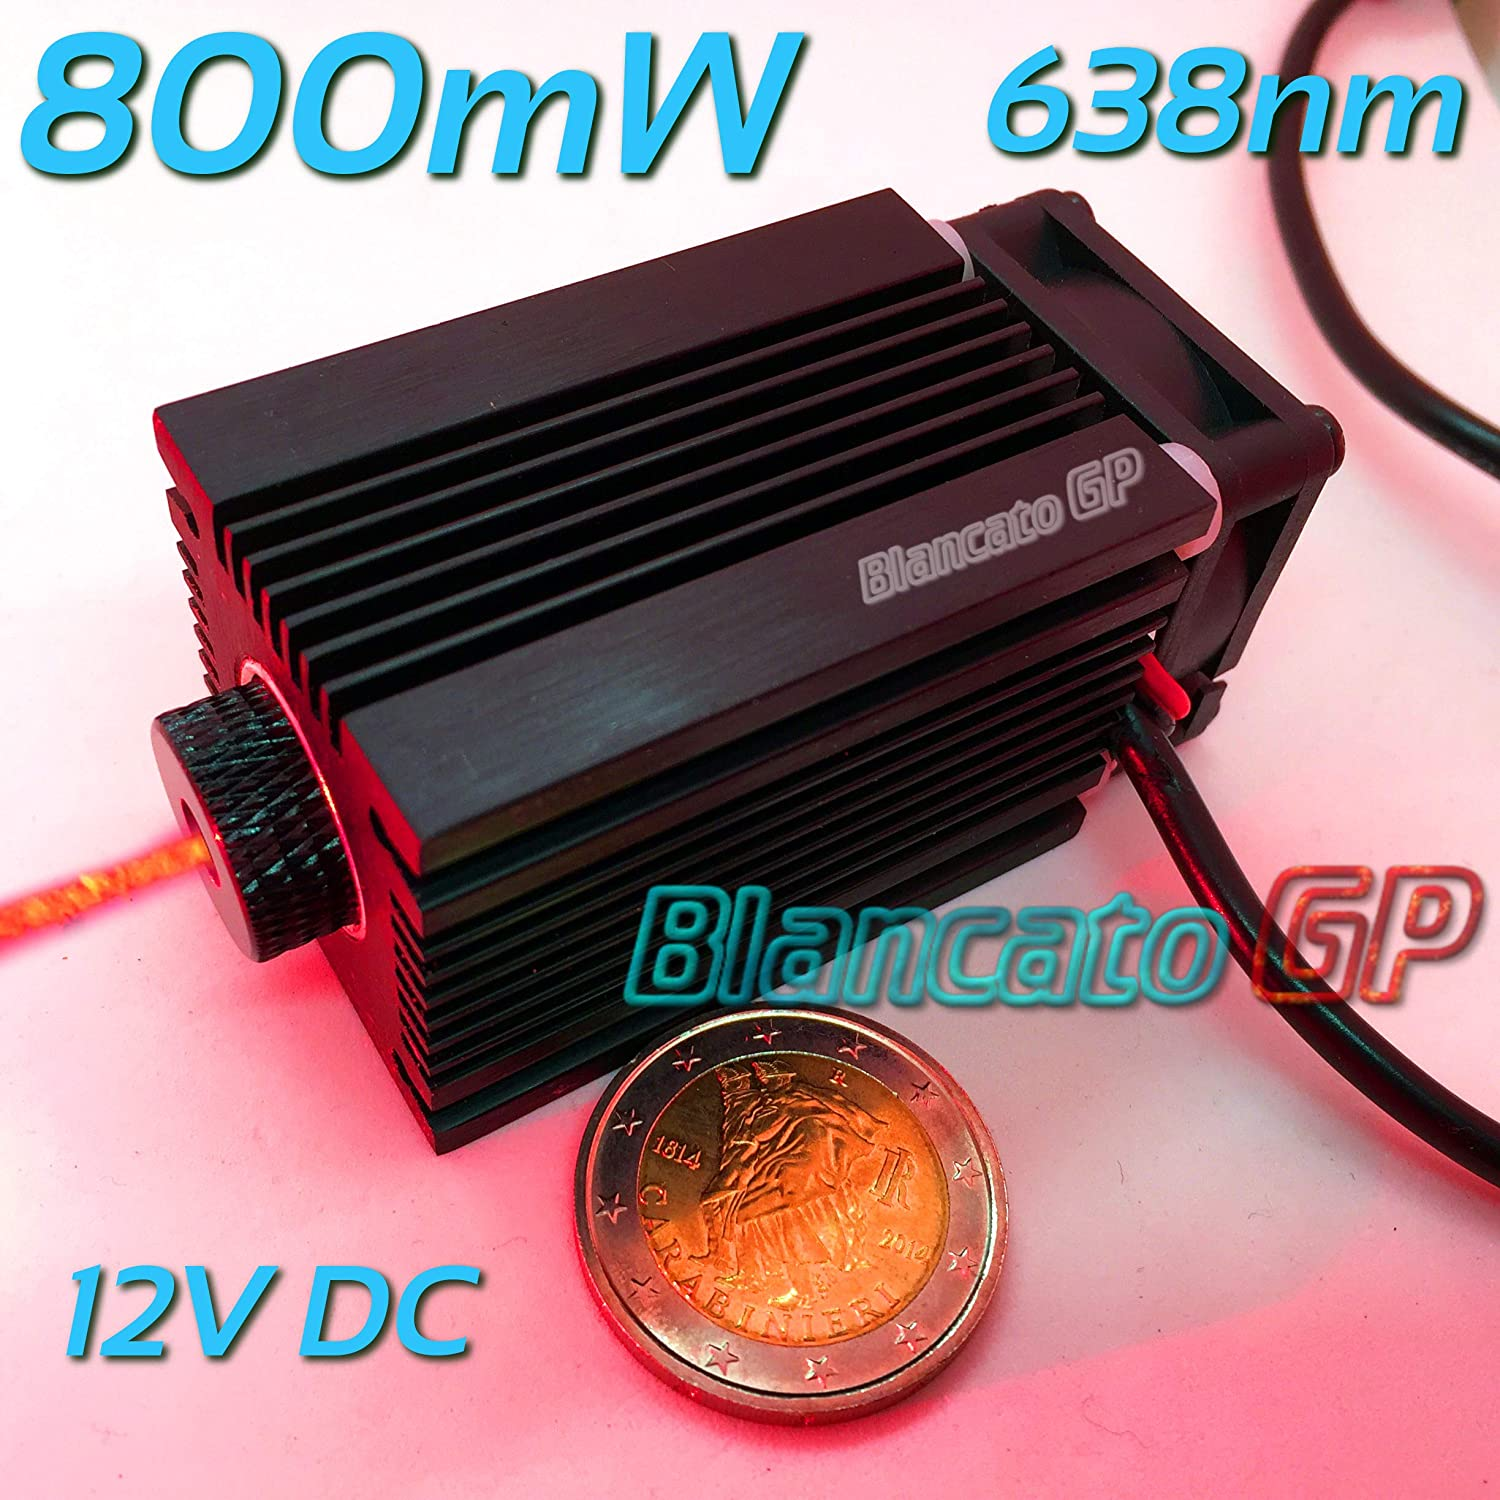 Module laser 12V 638Nm 800mW 0.8W point rouge Diode Module Focusable Red Dot BlancatoGP